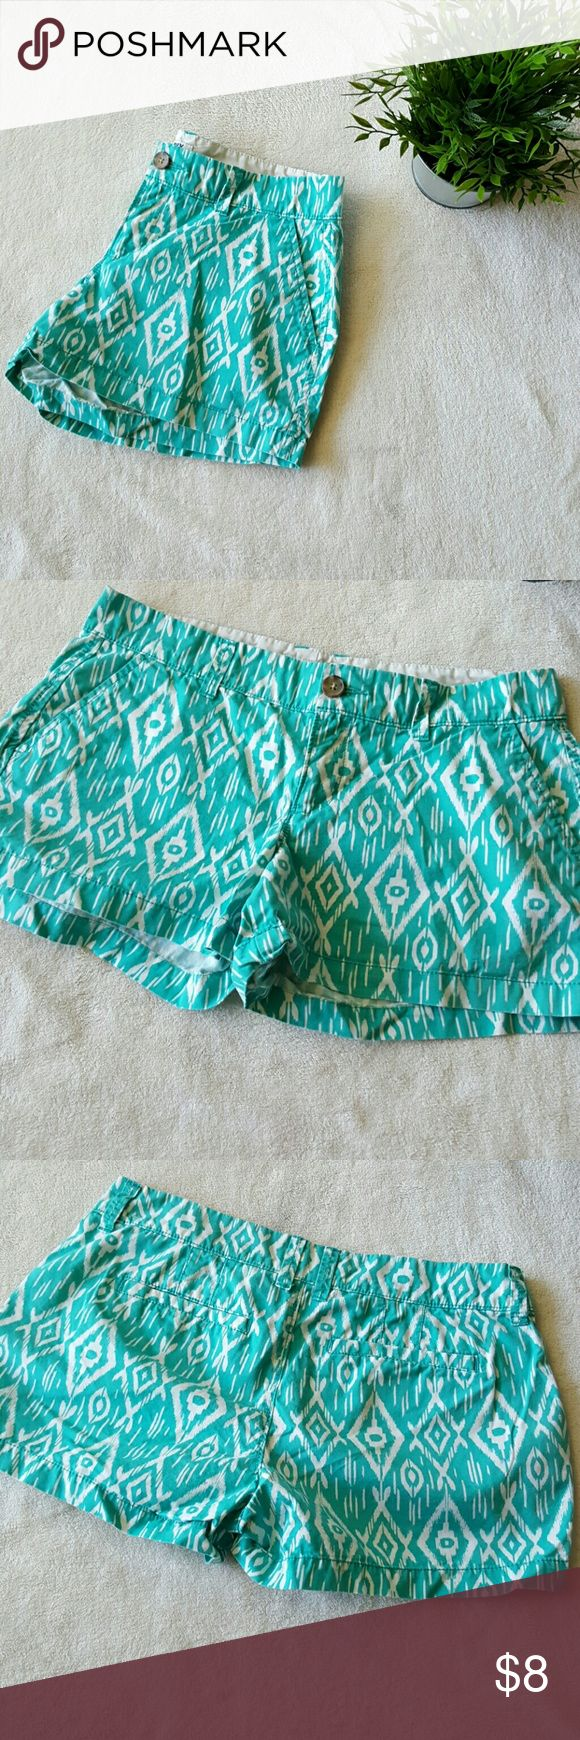 Blue aztec print shorts Blue and white aztec print shorts. Old Navy Shorts